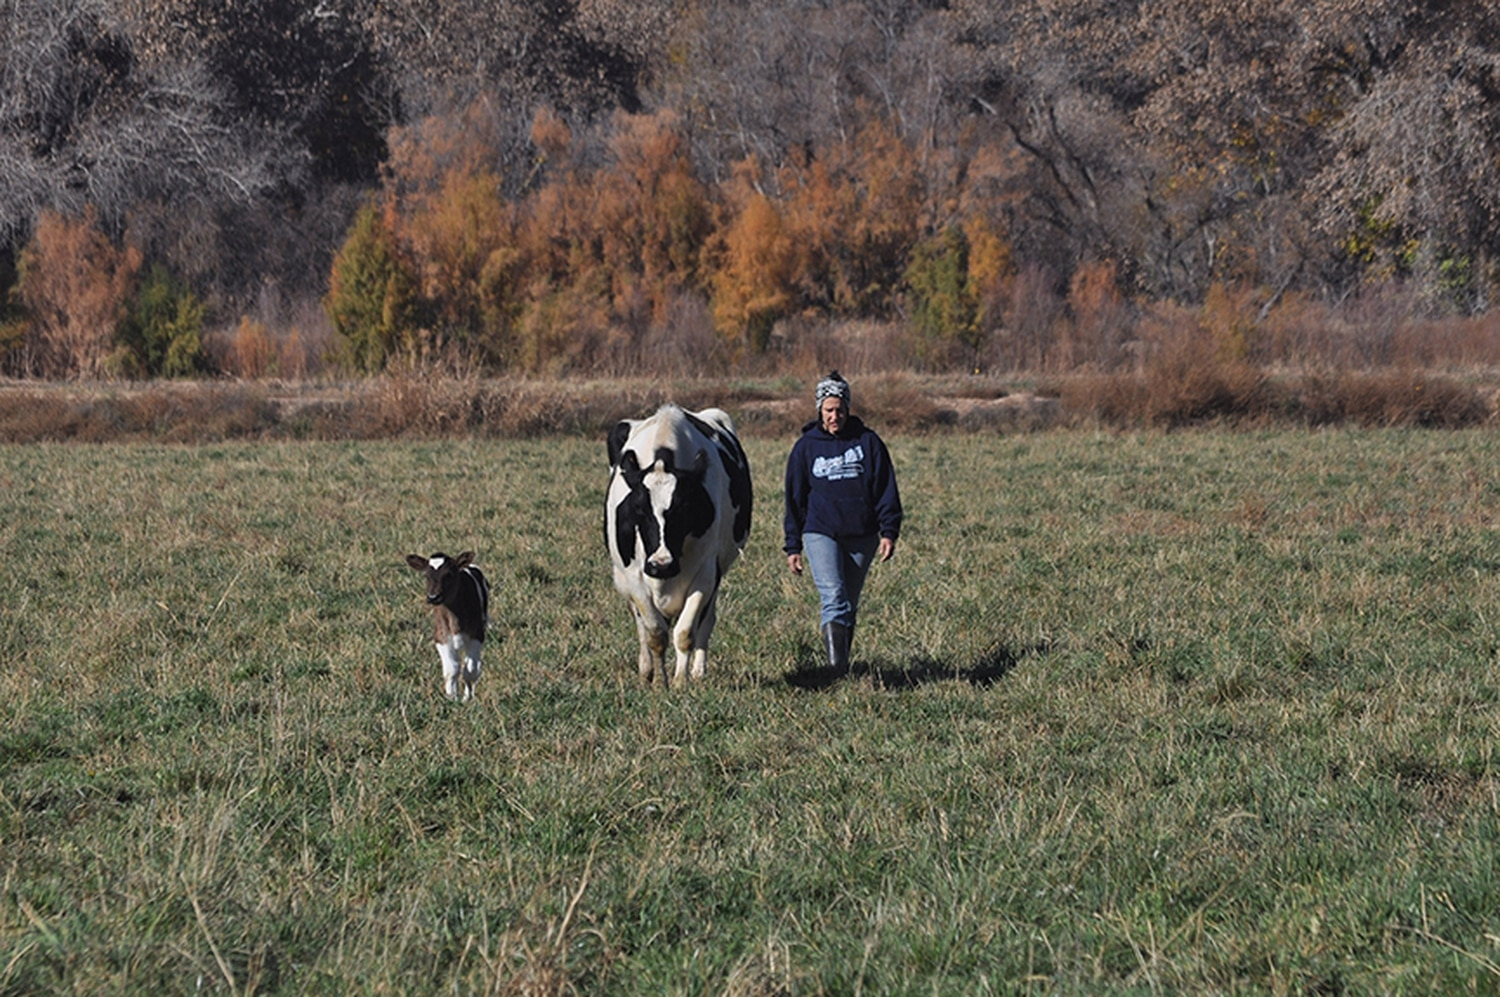 Cows actually get pasture time at De Smet Dairy in Bosque Farms, one of the state's small-scale dairies.